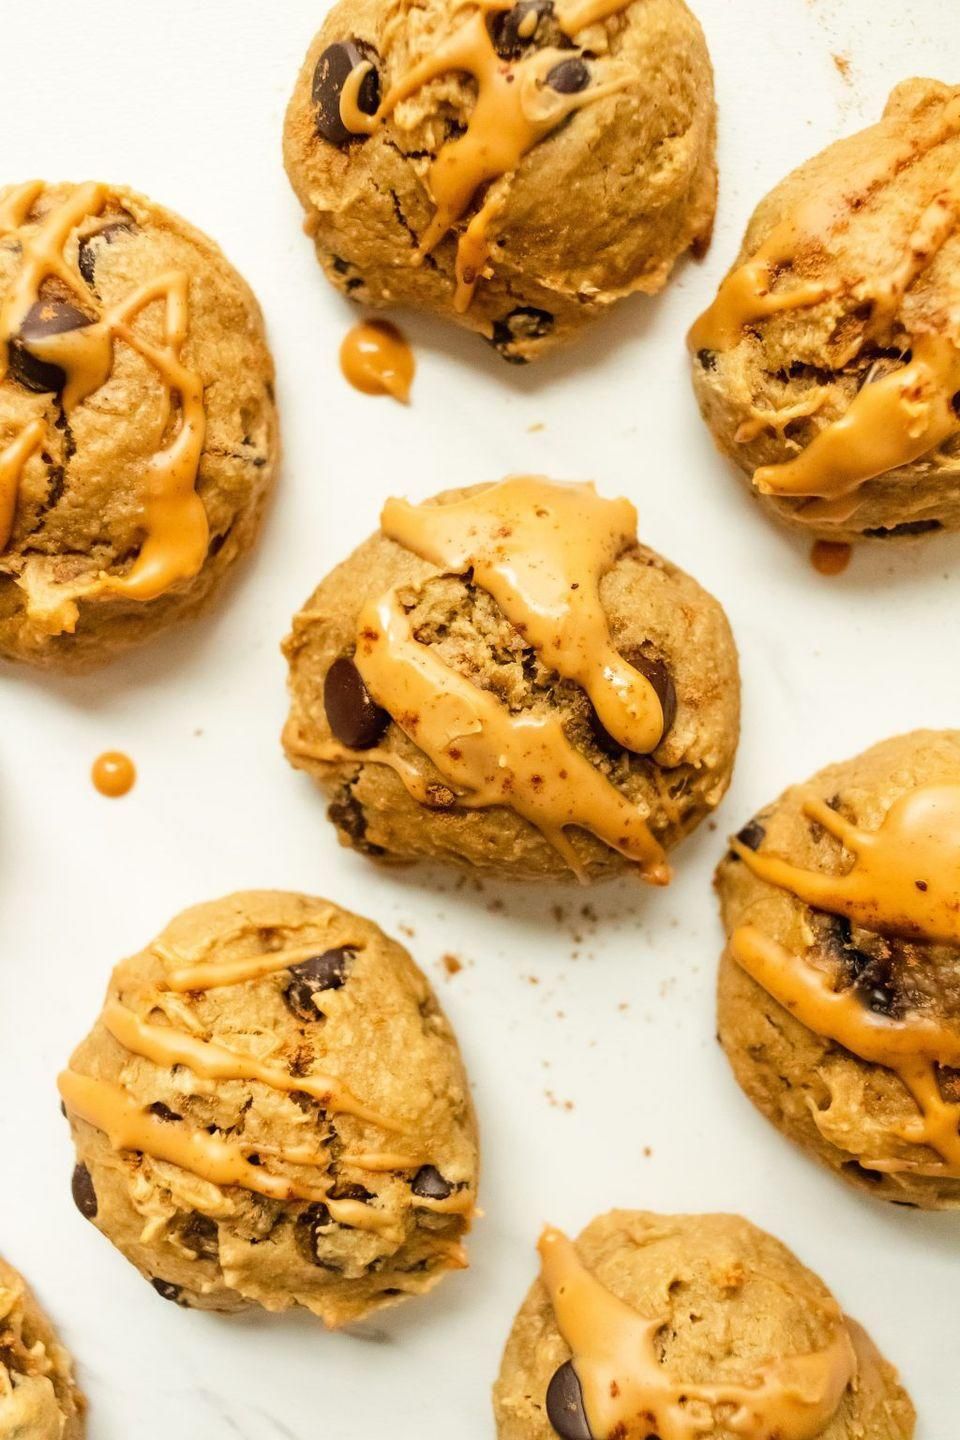 """<p>Give these soft, fluffy cookies a heavy drizzle of peanut butter and they're pretty much perfect. </p><p><a class=""""link rapid-noclick-resp"""" href=""""https://www.onceuponapumpkinrd.com/healthy-peanut-butter-banana-cookies/"""" rel=""""nofollow noopener"""" target=""""_blank"""" data-ylk=""""slk:GET THE RECIPE"""">GET THE RECIPE</a></p><p><em>Per serving: 147 calories, 8 g fat, 16.4 g carbs, 136 mg sodium, 8 g sugar, 1.2 g fiber, 3 g protein</em><br></p>"""